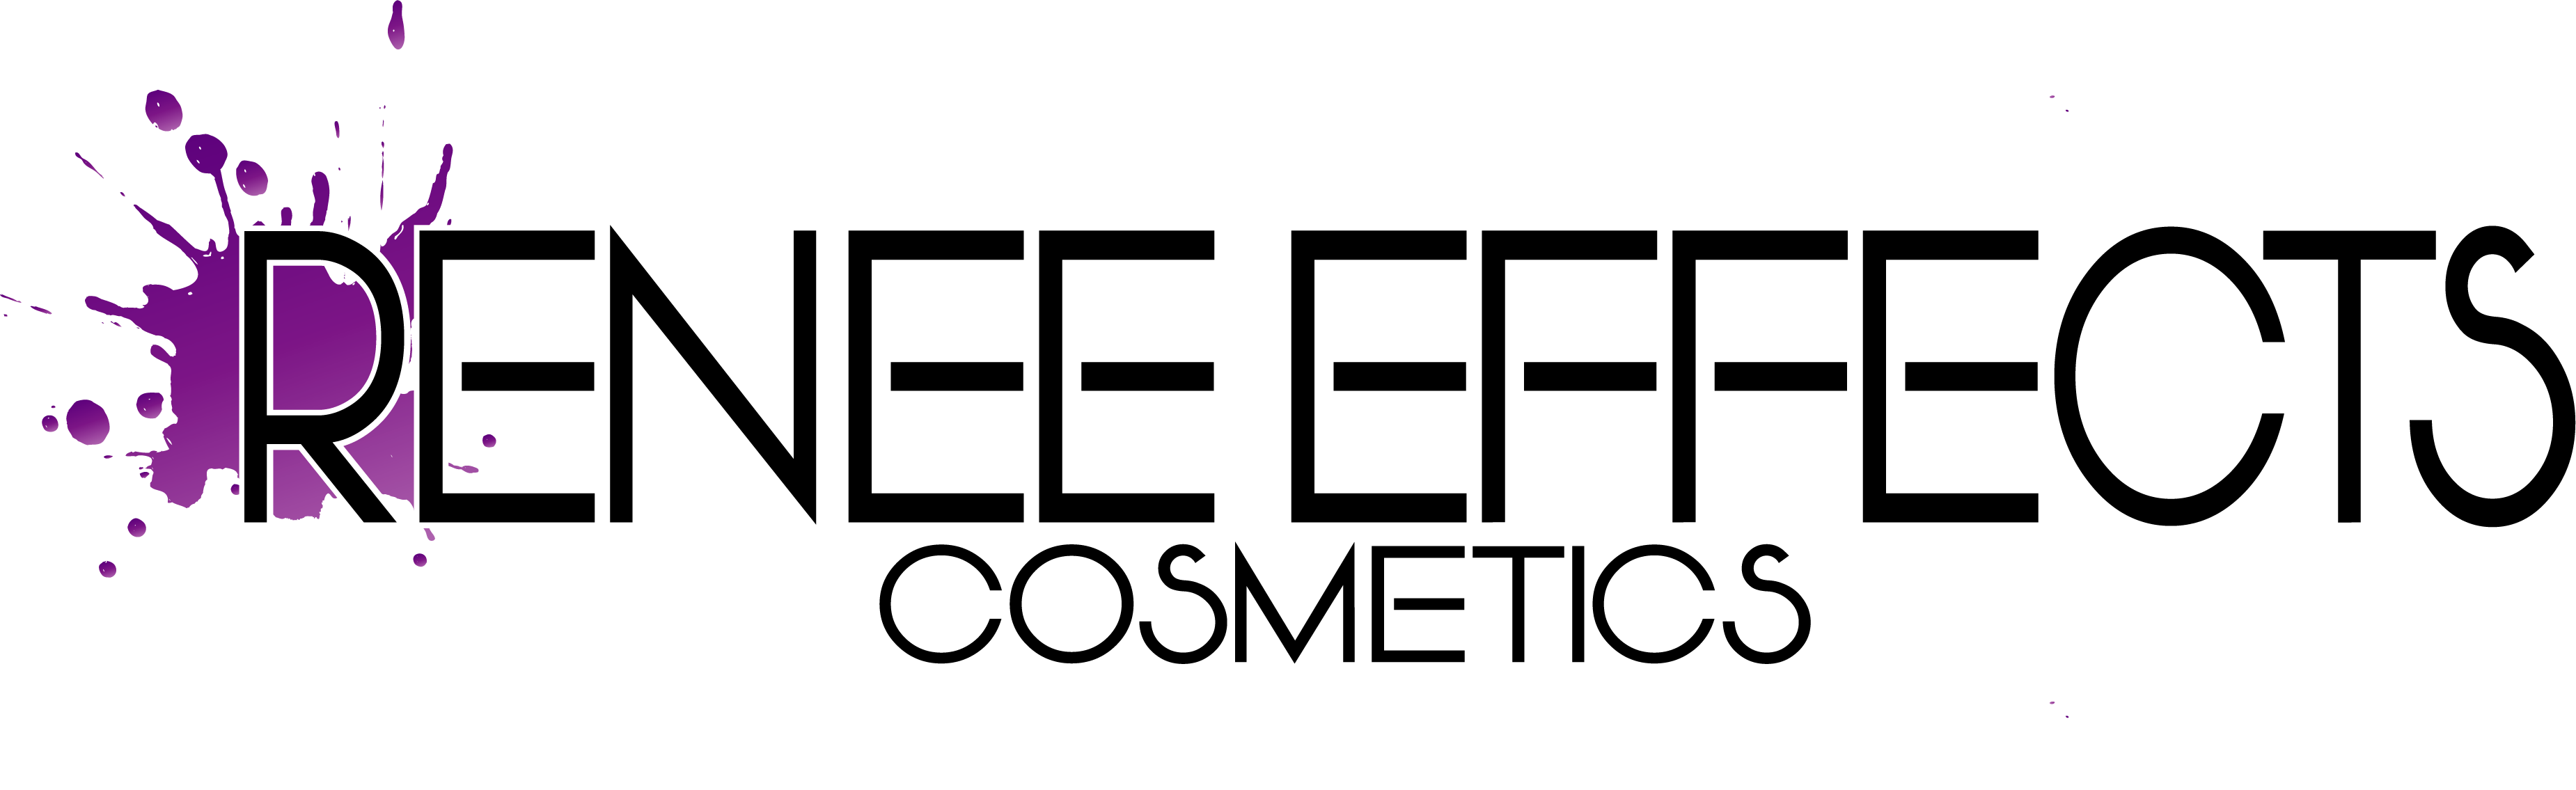 Renee Effects Cosmetics